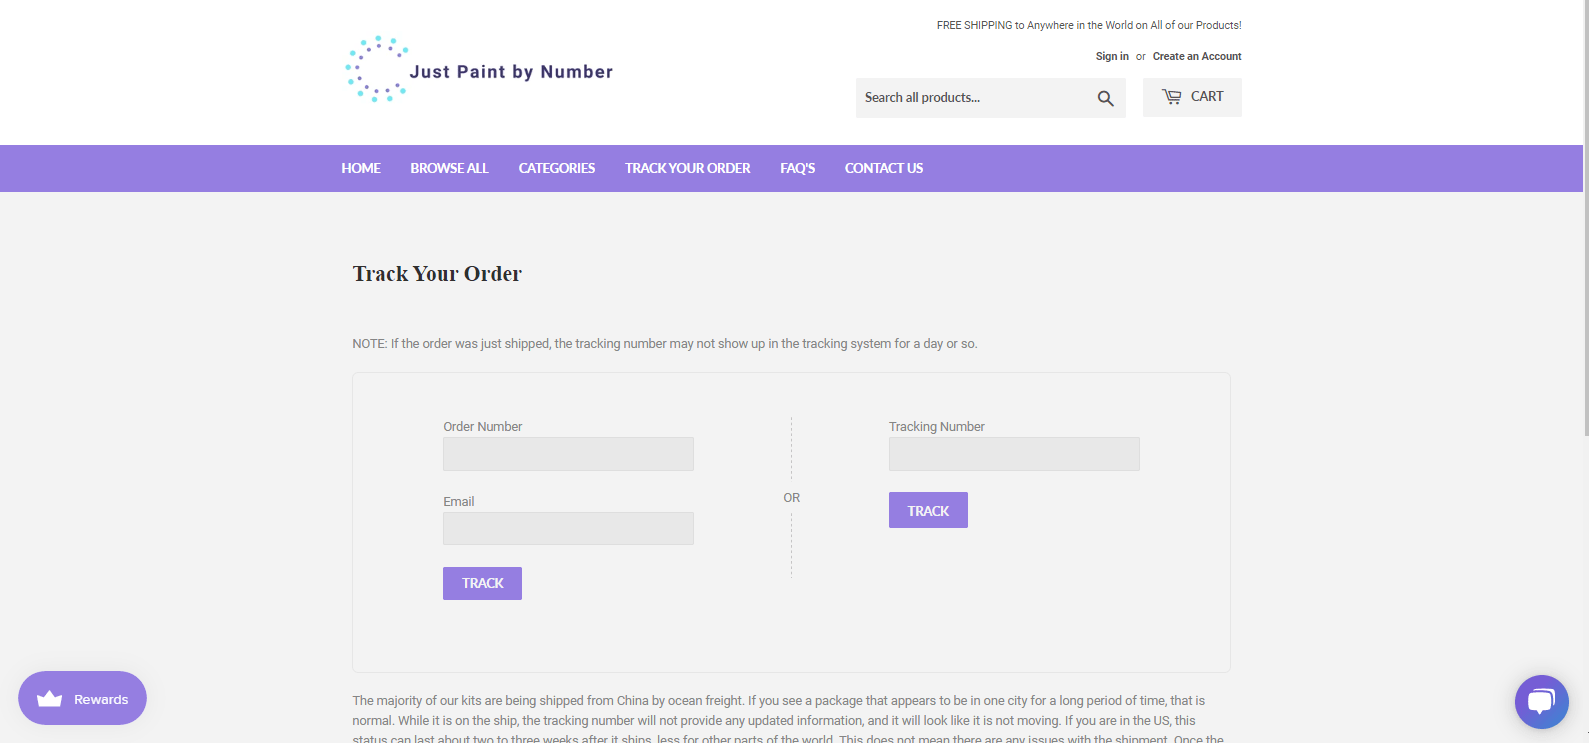 Improved Order Tracking System - Just Paint by Number